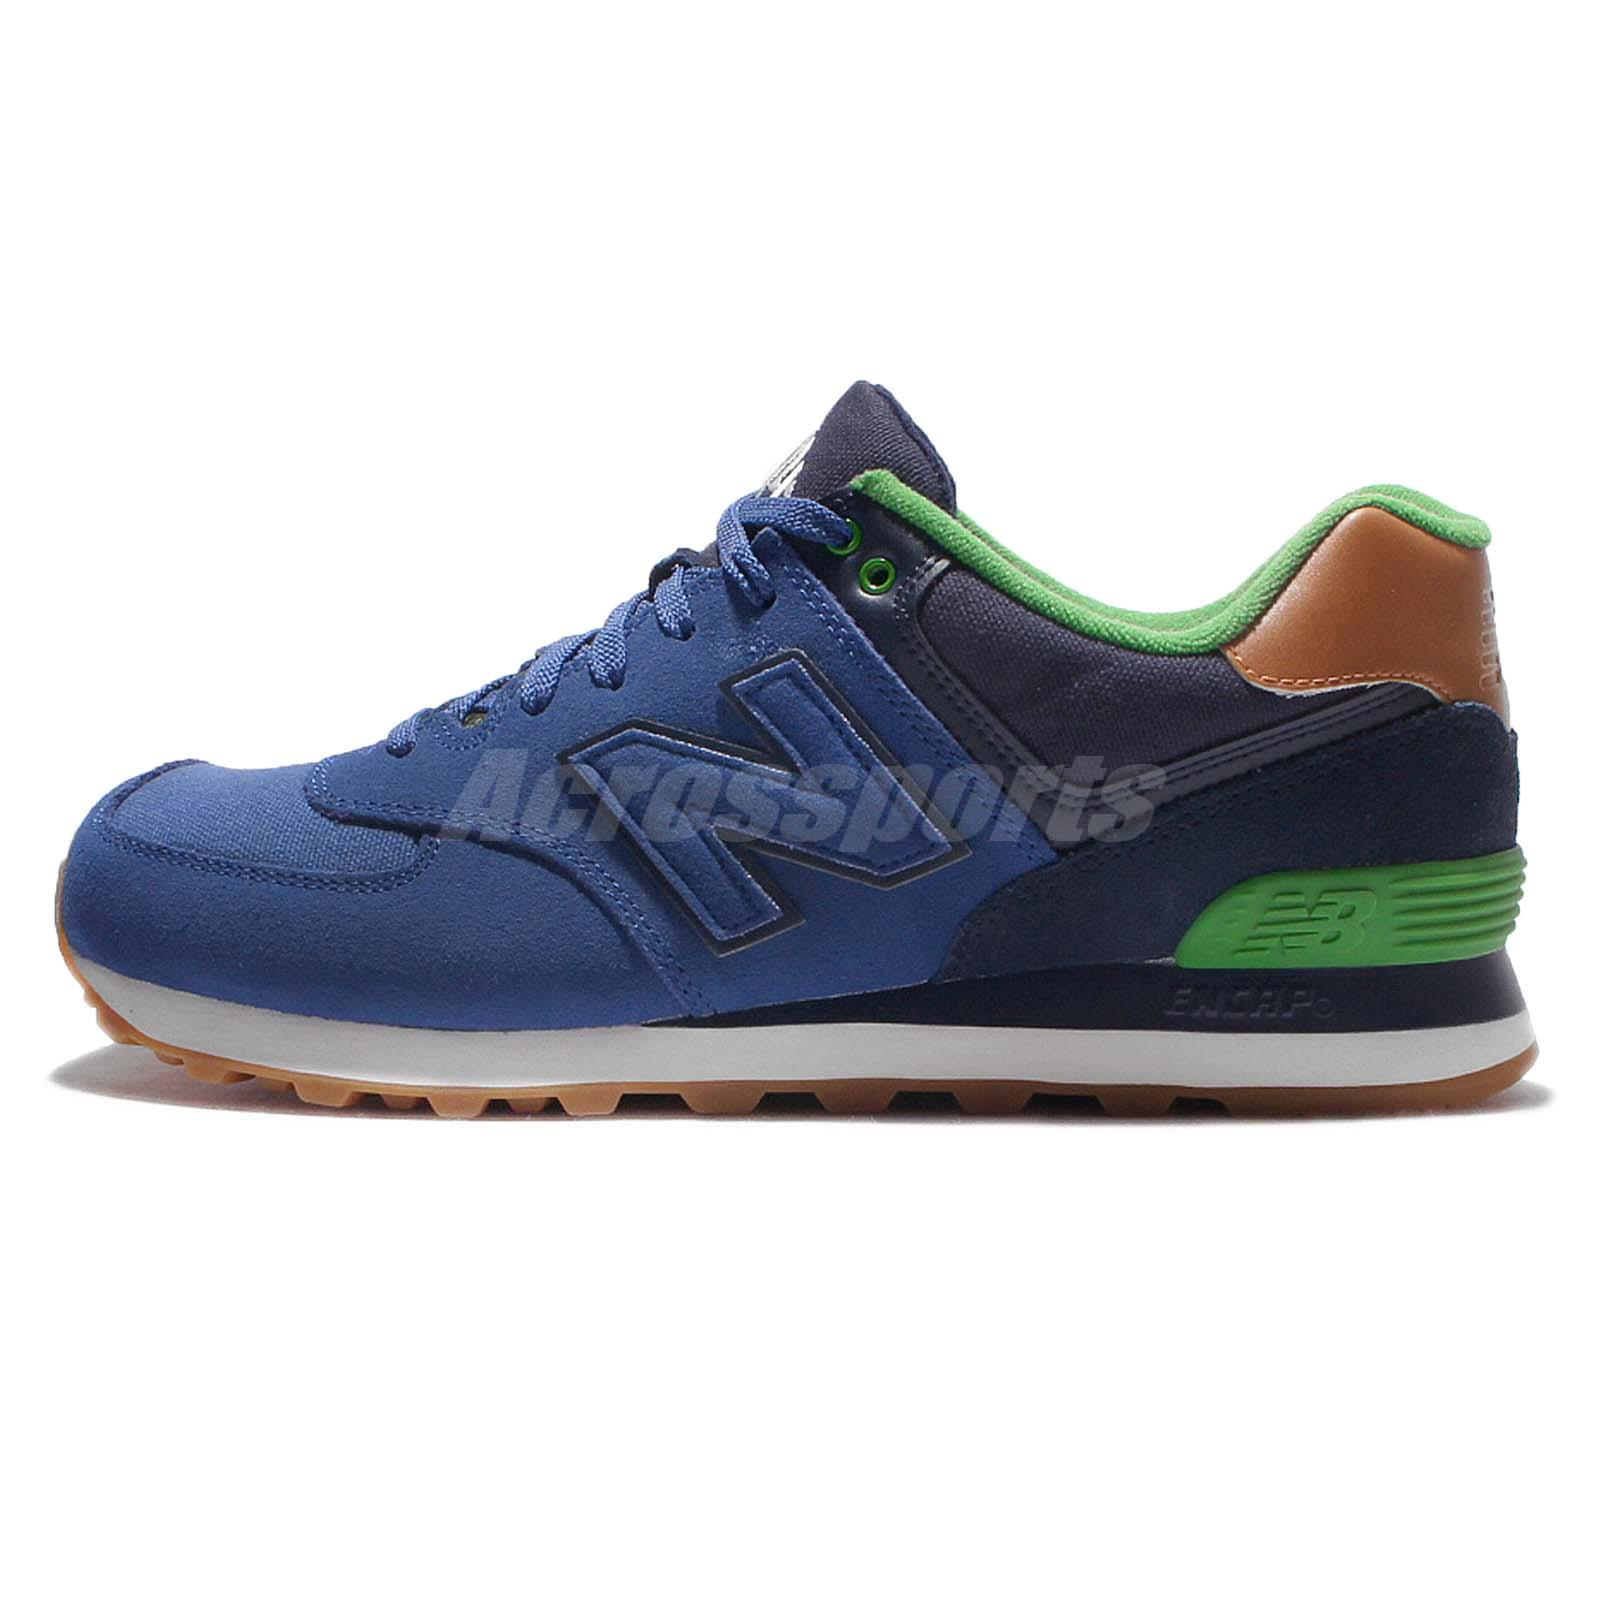 New Balance ML574NEAD Collegiate Navy Green Gum Mens Retro Running ML574NEAD